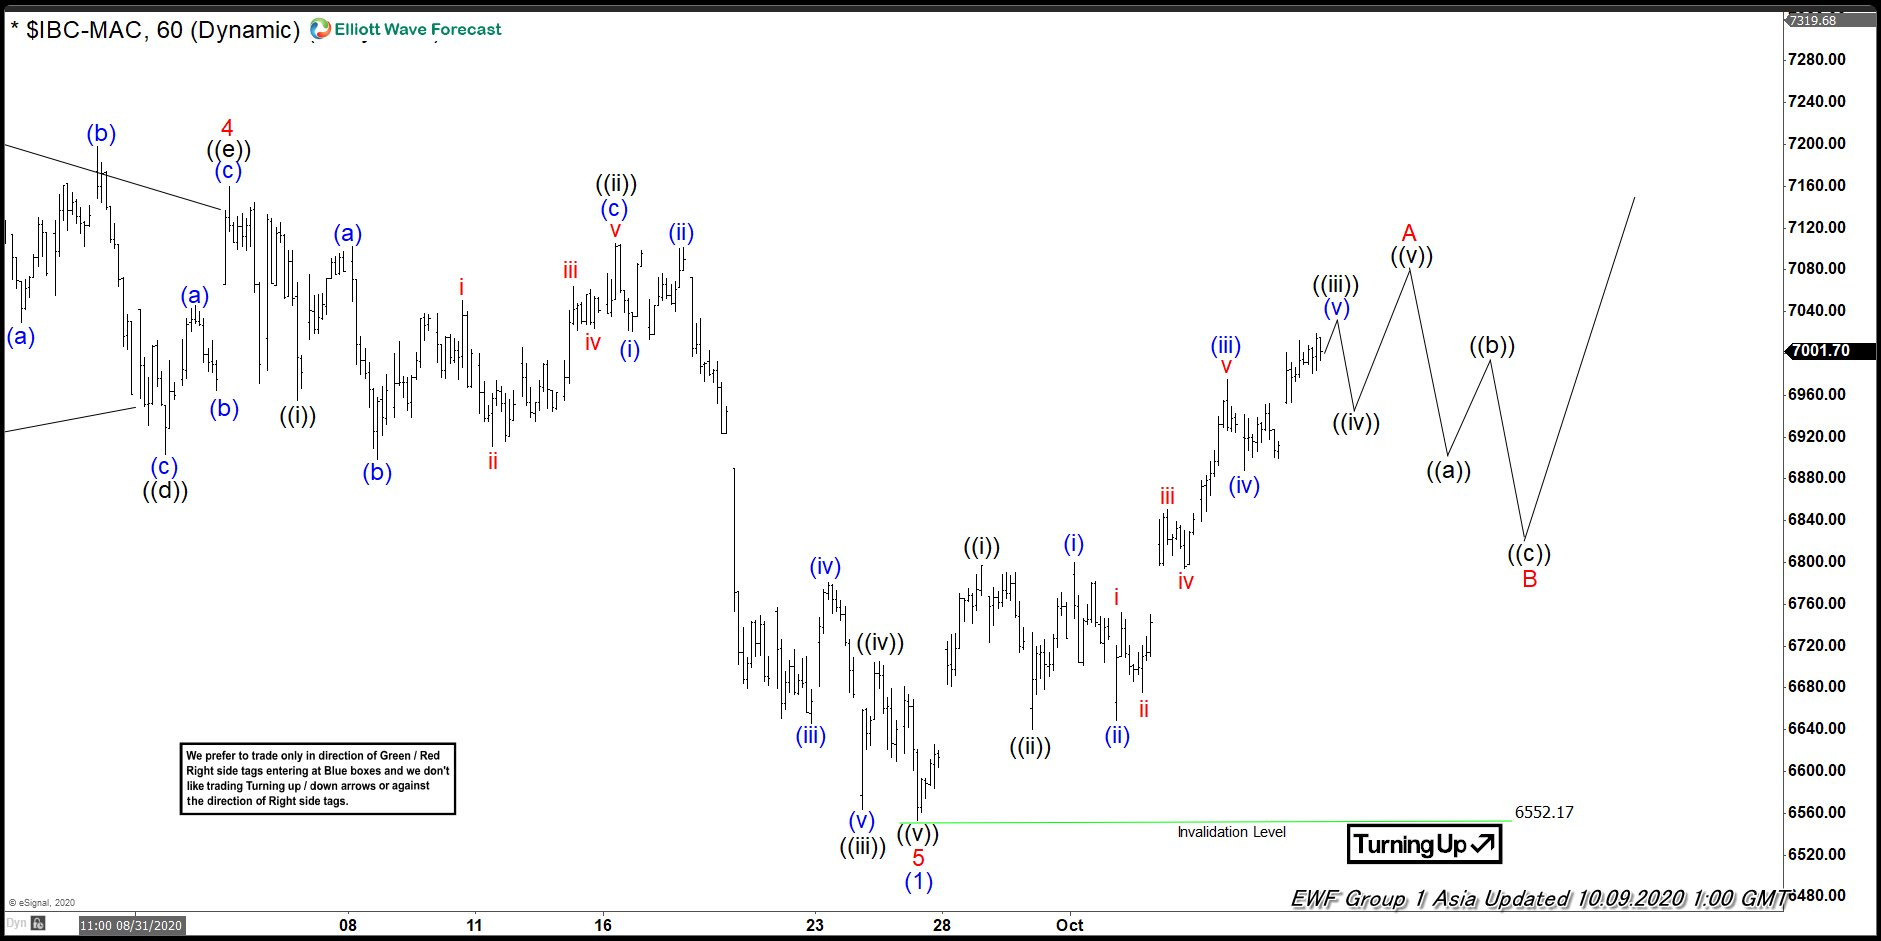 Elliott Wave View: Impulsive Rally in IBEX